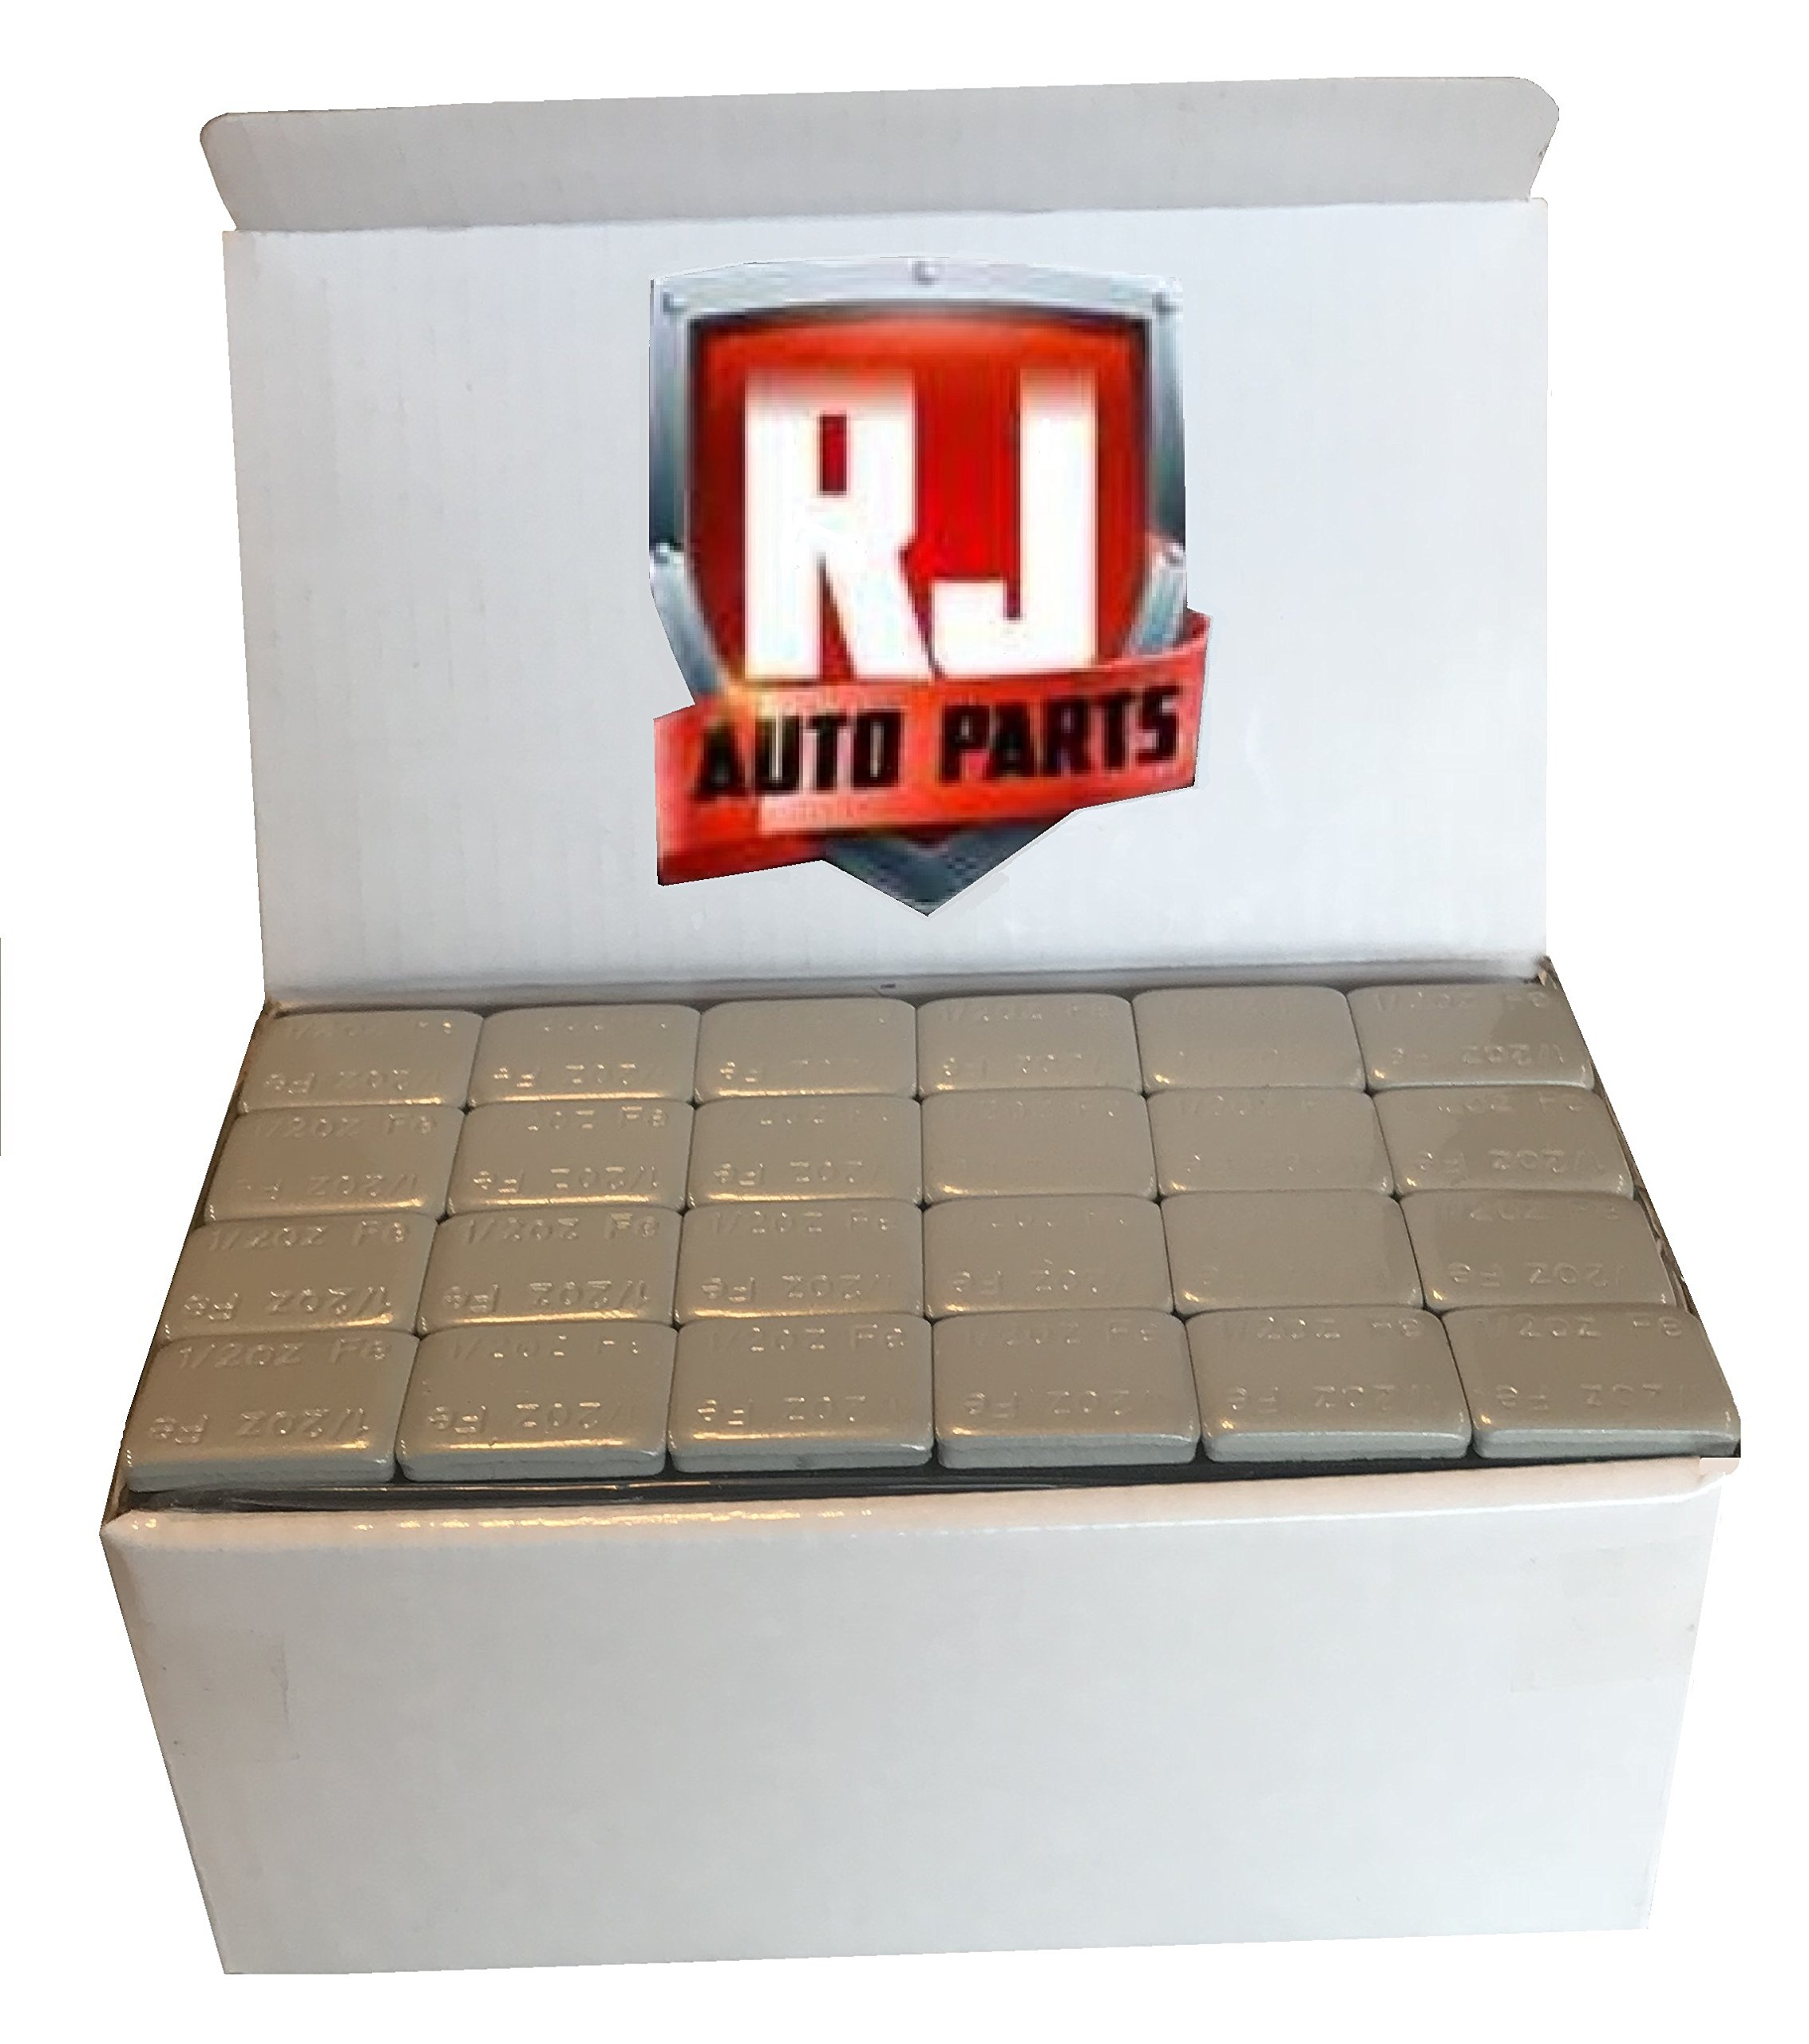 2 Boxes Wheel Weights, Grey 1/2 oz., Stick-on Adhesive Tape (18.00 lbs) 576 Pieces, Lead Free by RJ Auto Parts (Image #1)